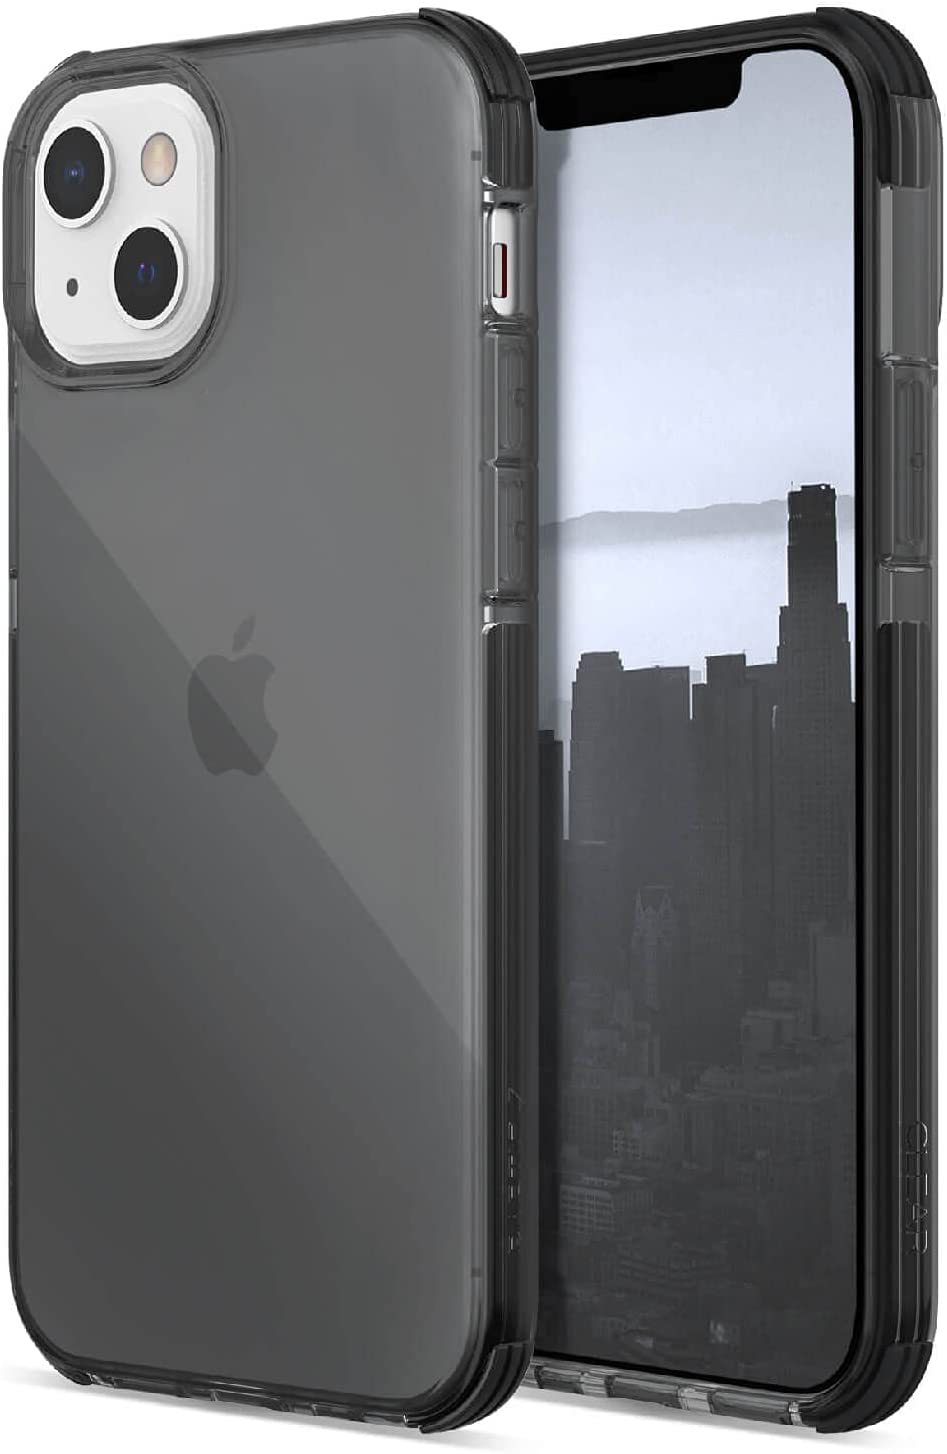 Raptic Clear Case Compatible with iPhone 13 Case, Anti-Yellow Slim Cover, Shock Absorbing Rubber, Scratch Resistant Protective Case, Fits iPhone 13, Smoke